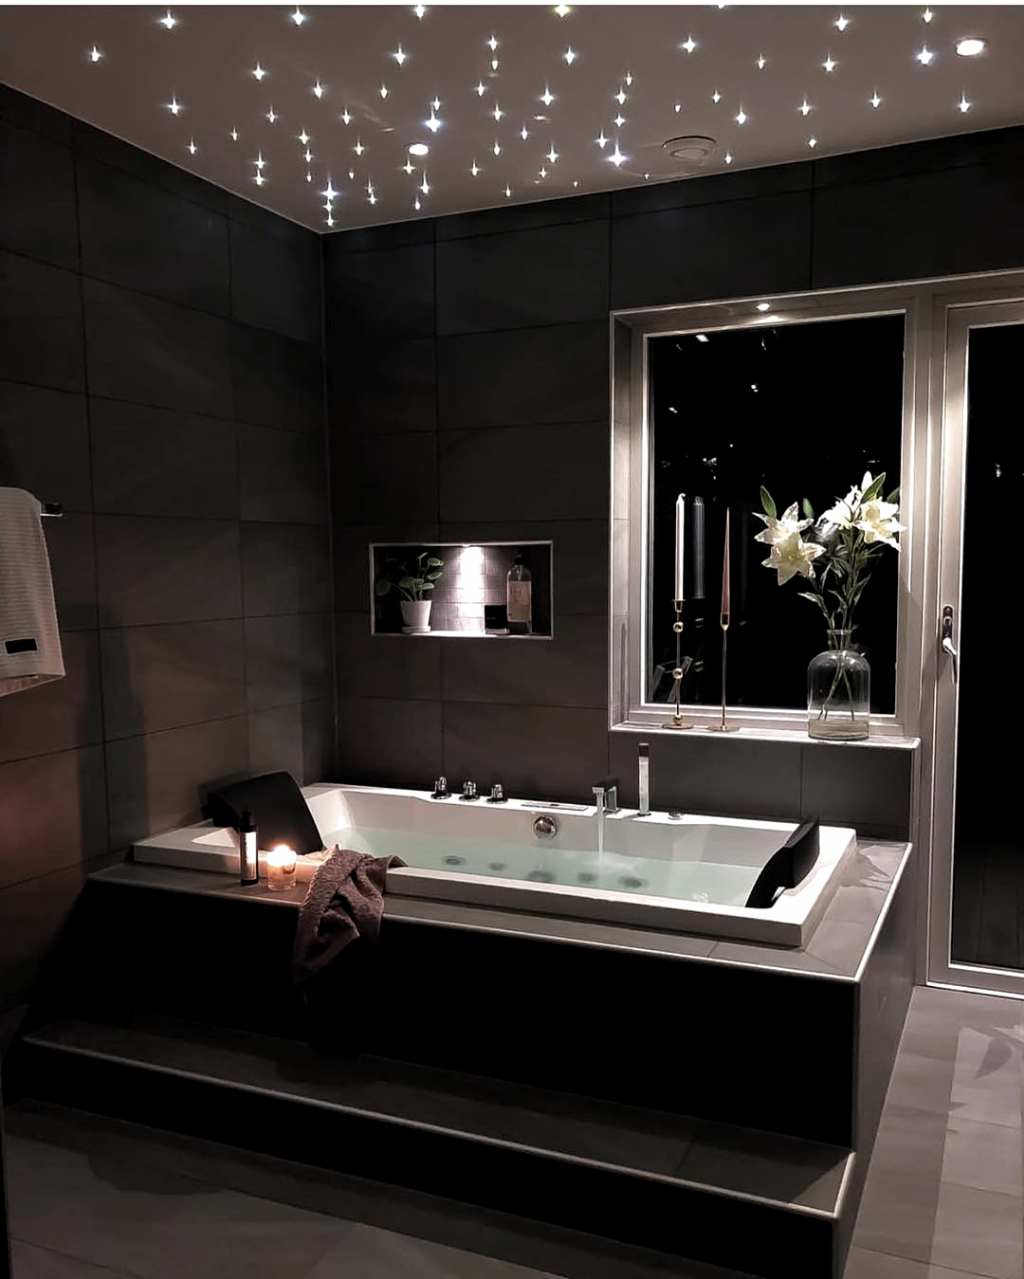 Gorgeous Bathroom By Dont Miss All The Fab Inspiration Shared At Turn On Das Badezimmer Wird In 2020 Badezimmer Innenausstattung Luxusbadezimmer Badezimmereinrichtung